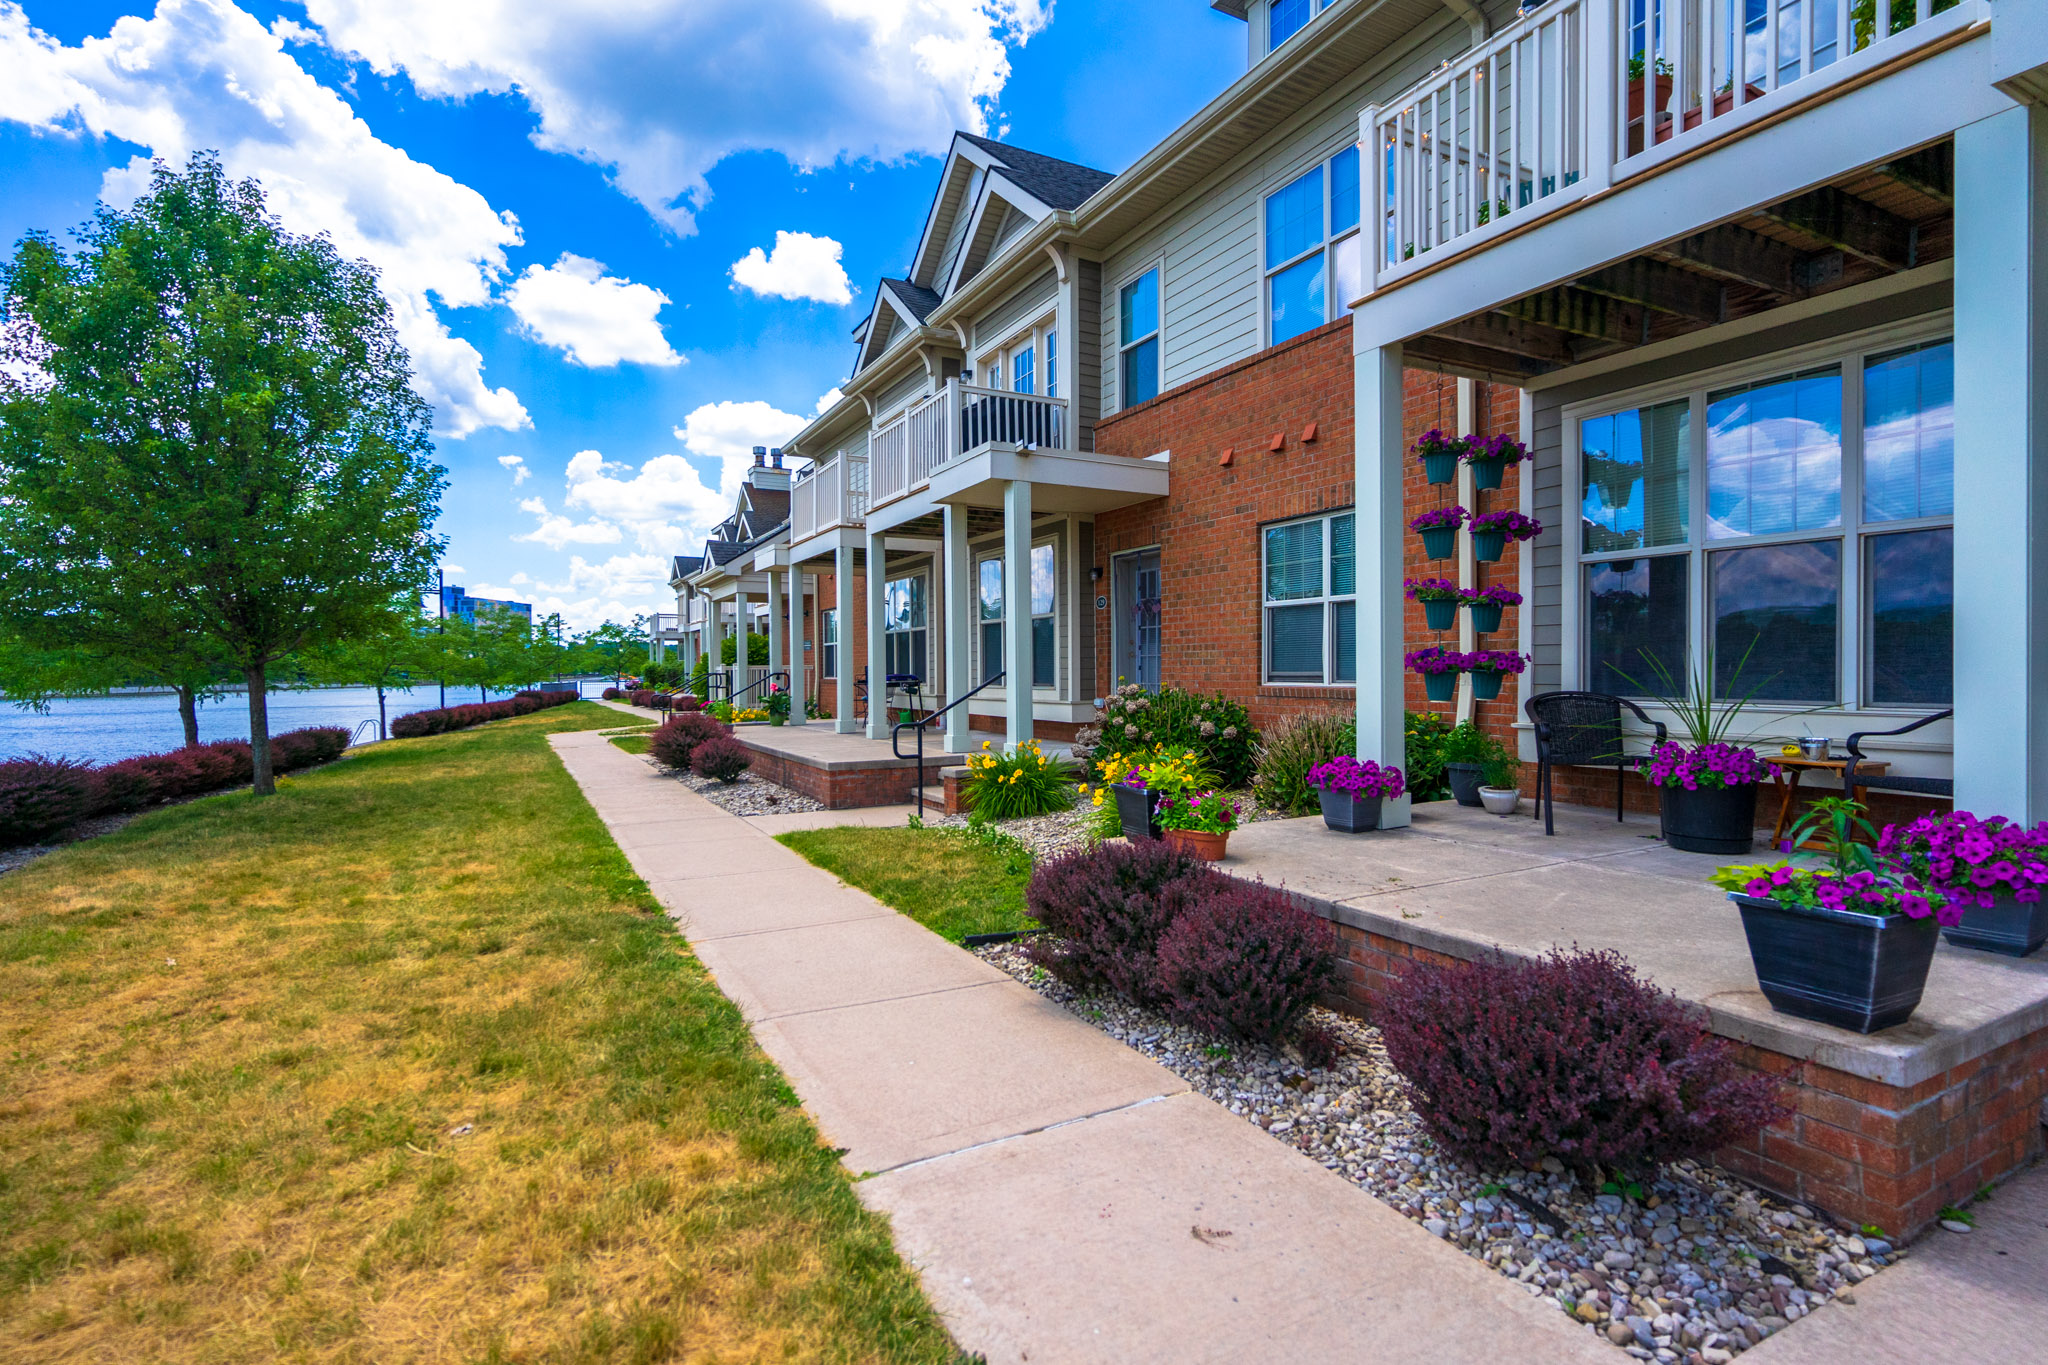 Exterior View at the Cornhill Landing Apartments in Rochester, NY